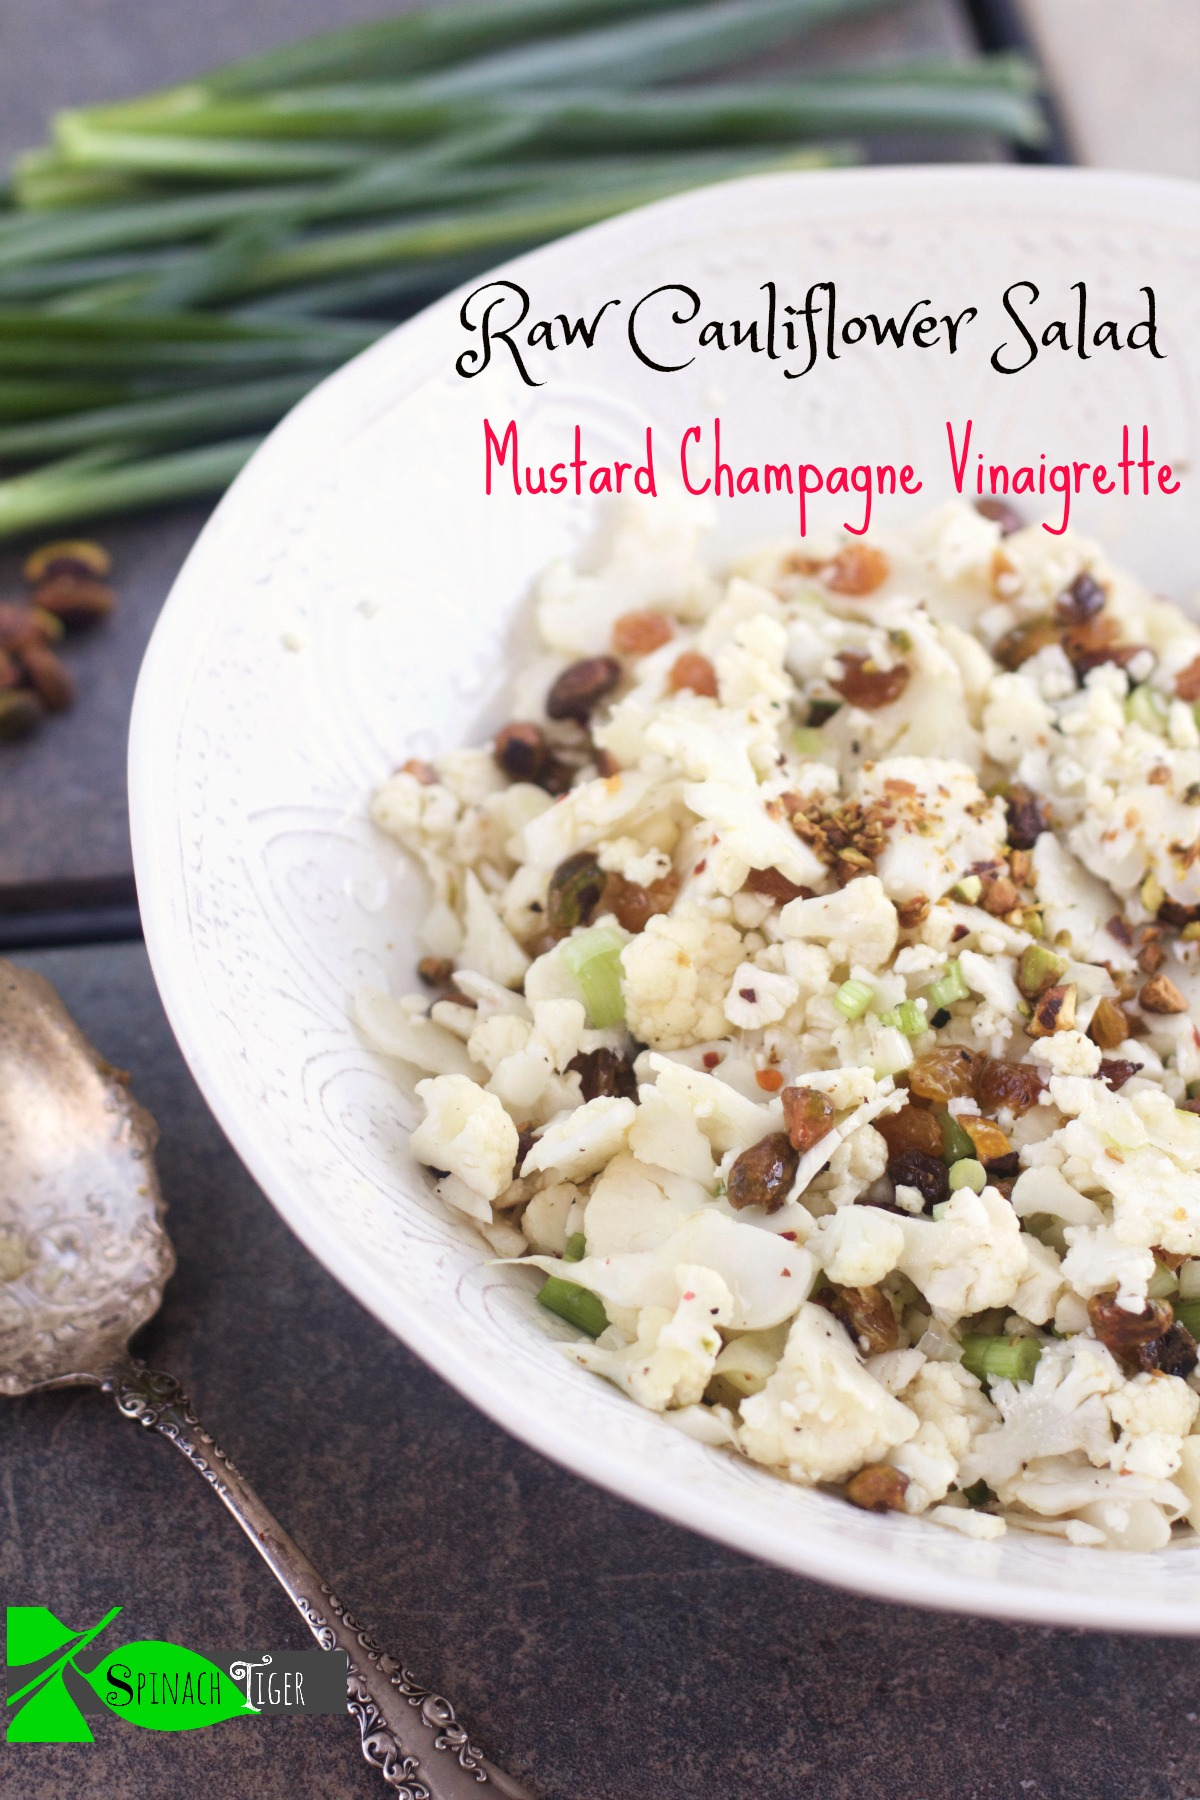 Raw Cauliflower Salad and Holiday Side Dishes from Spinach Tiger